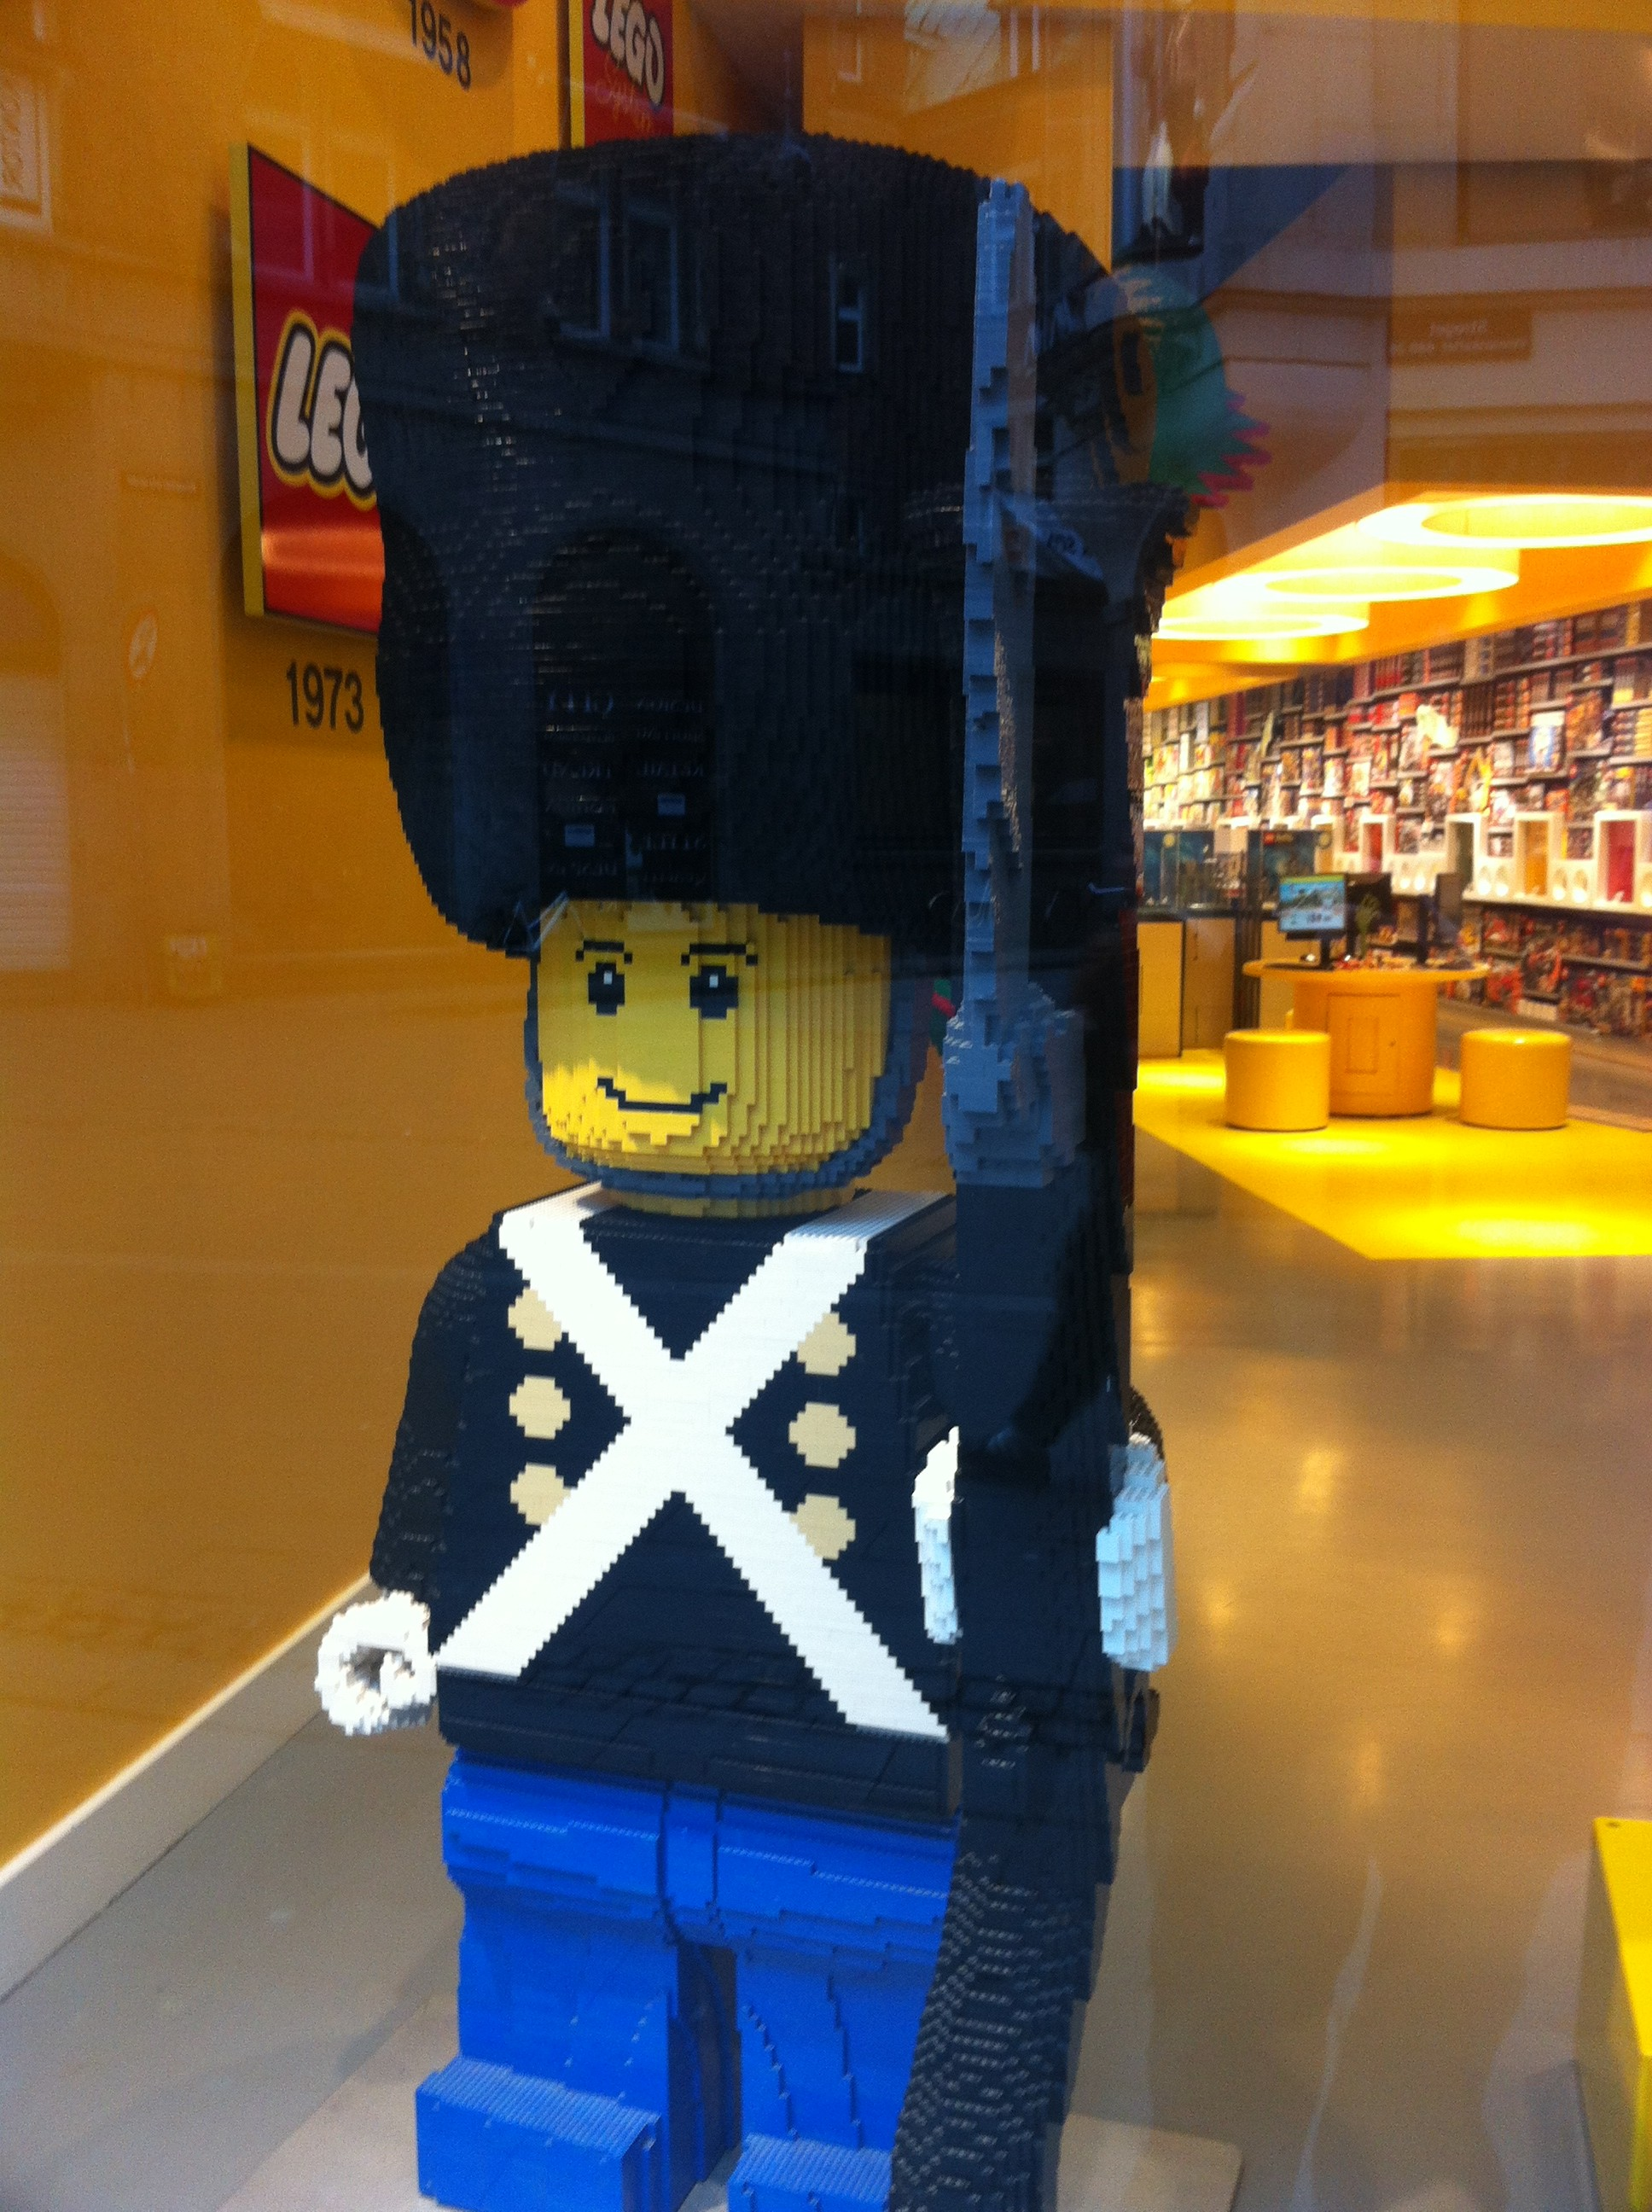 Giant Lego soldier